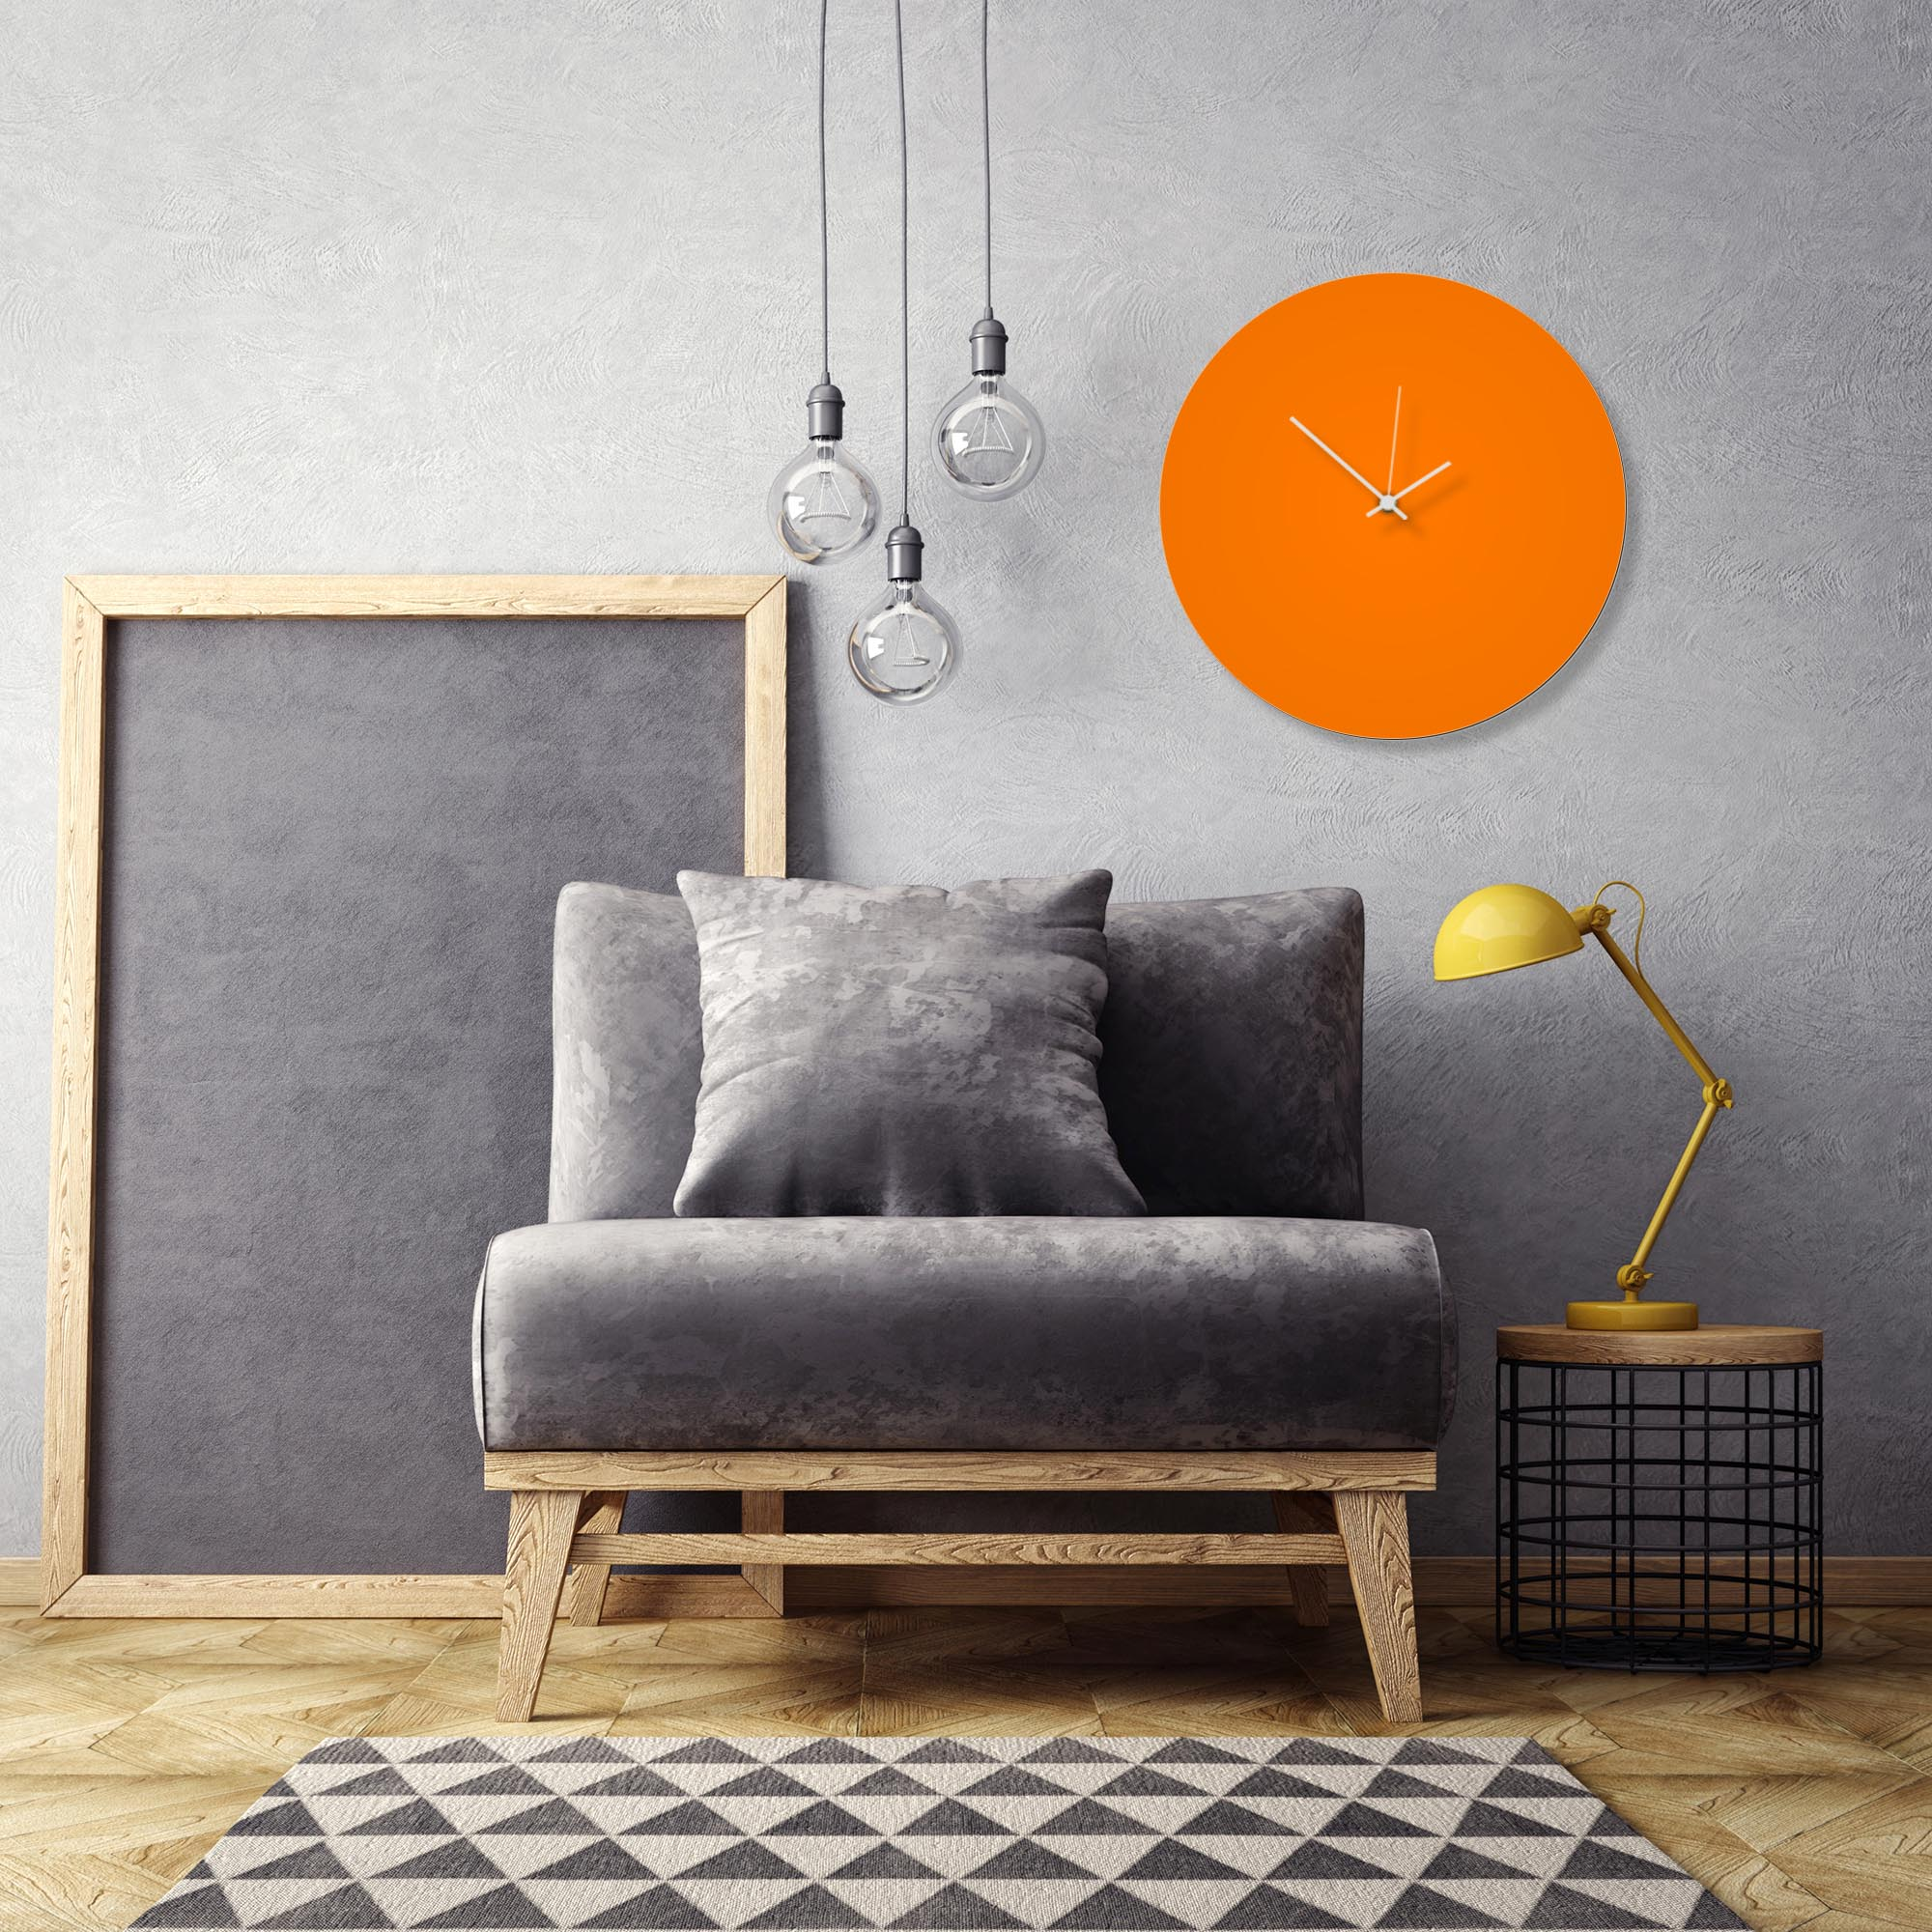 Orangeout White Circle Clock Large by Adam Schwoeppe Contemporary Clock on Aluminum Polymetal - Alternate View 1